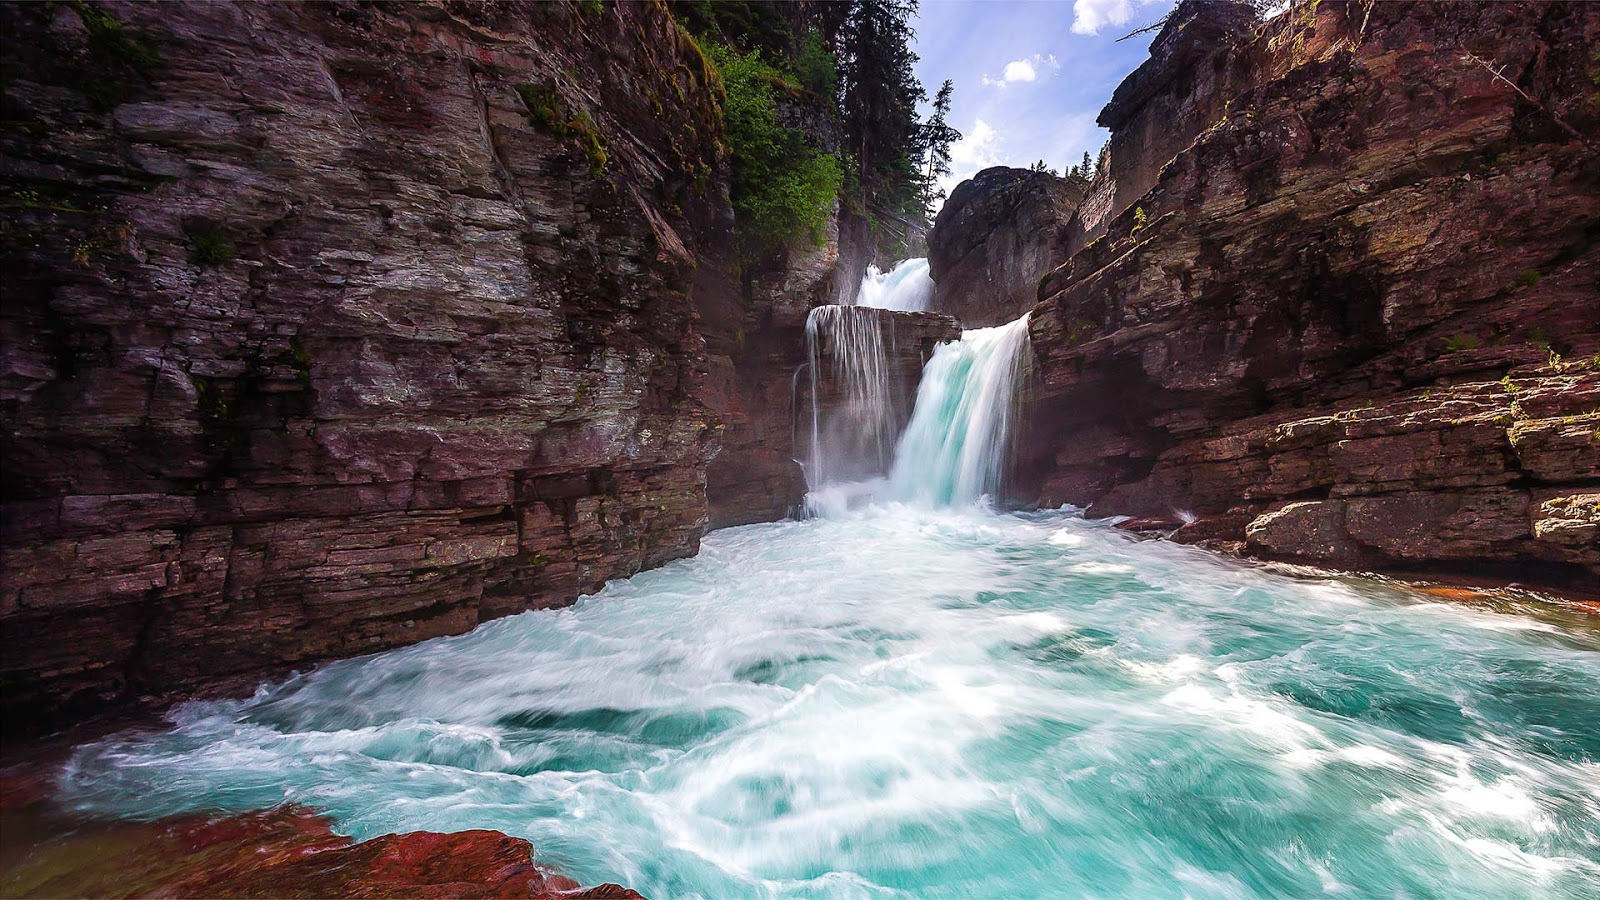 St. Mary Falls in Glacier National Park, Montana © Pung/Shutterstock